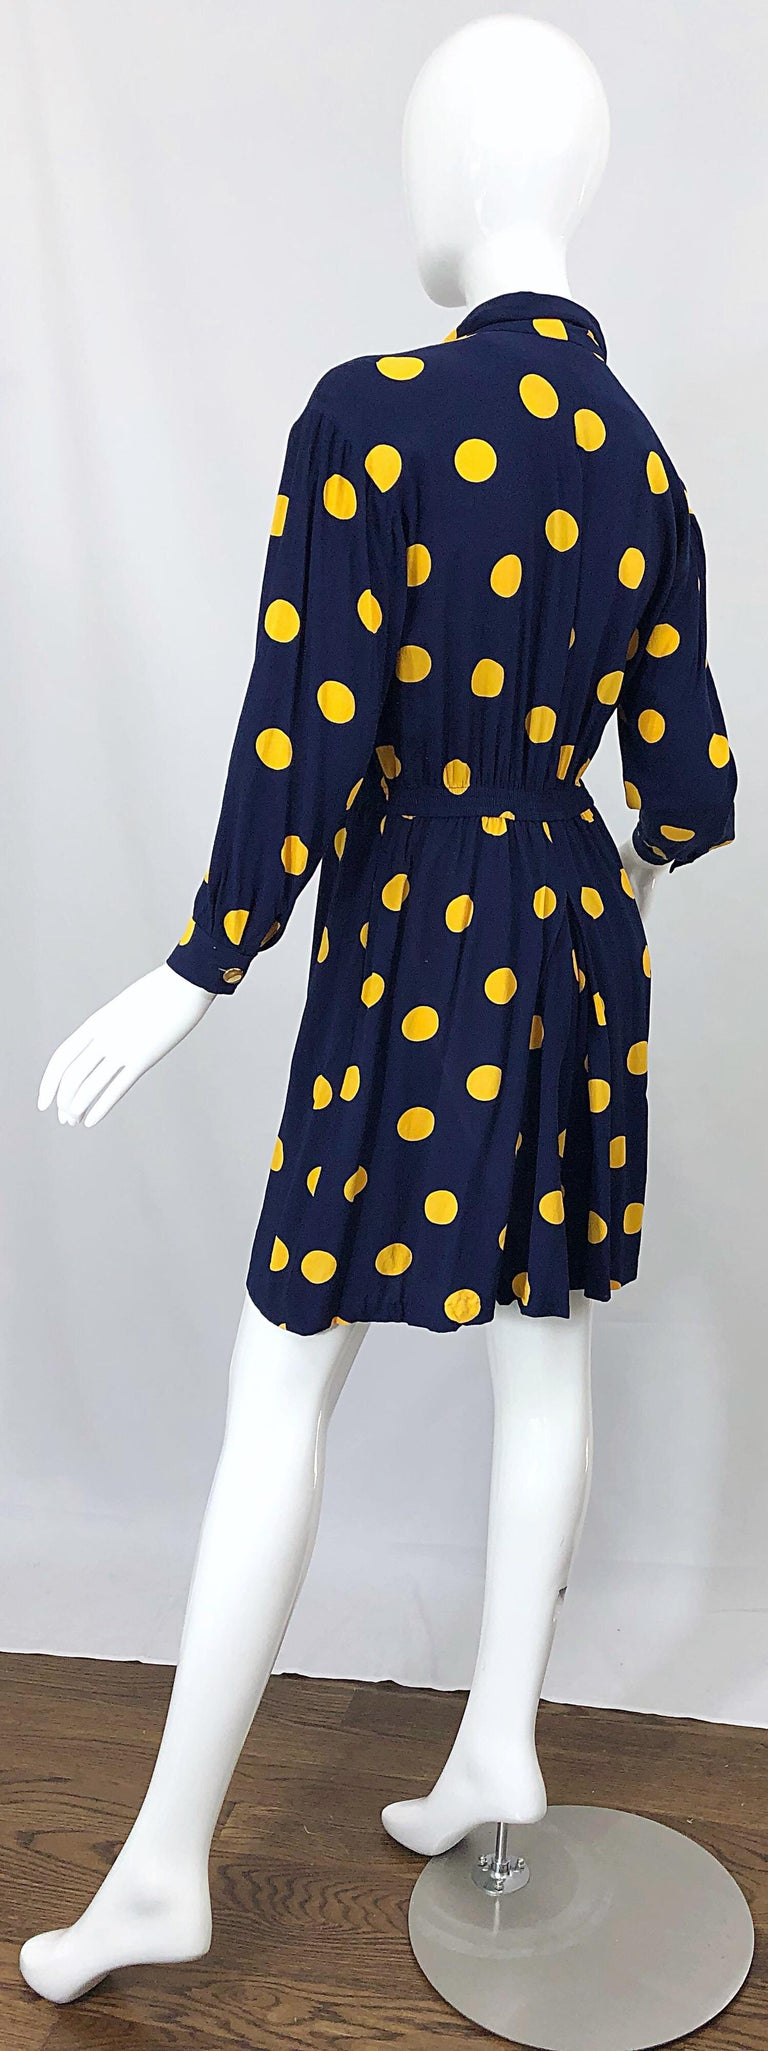 Size 8 Romper Late 1980s Navy Blue and Yellow Polka Dot 80s Vintage Romper For Sale 10